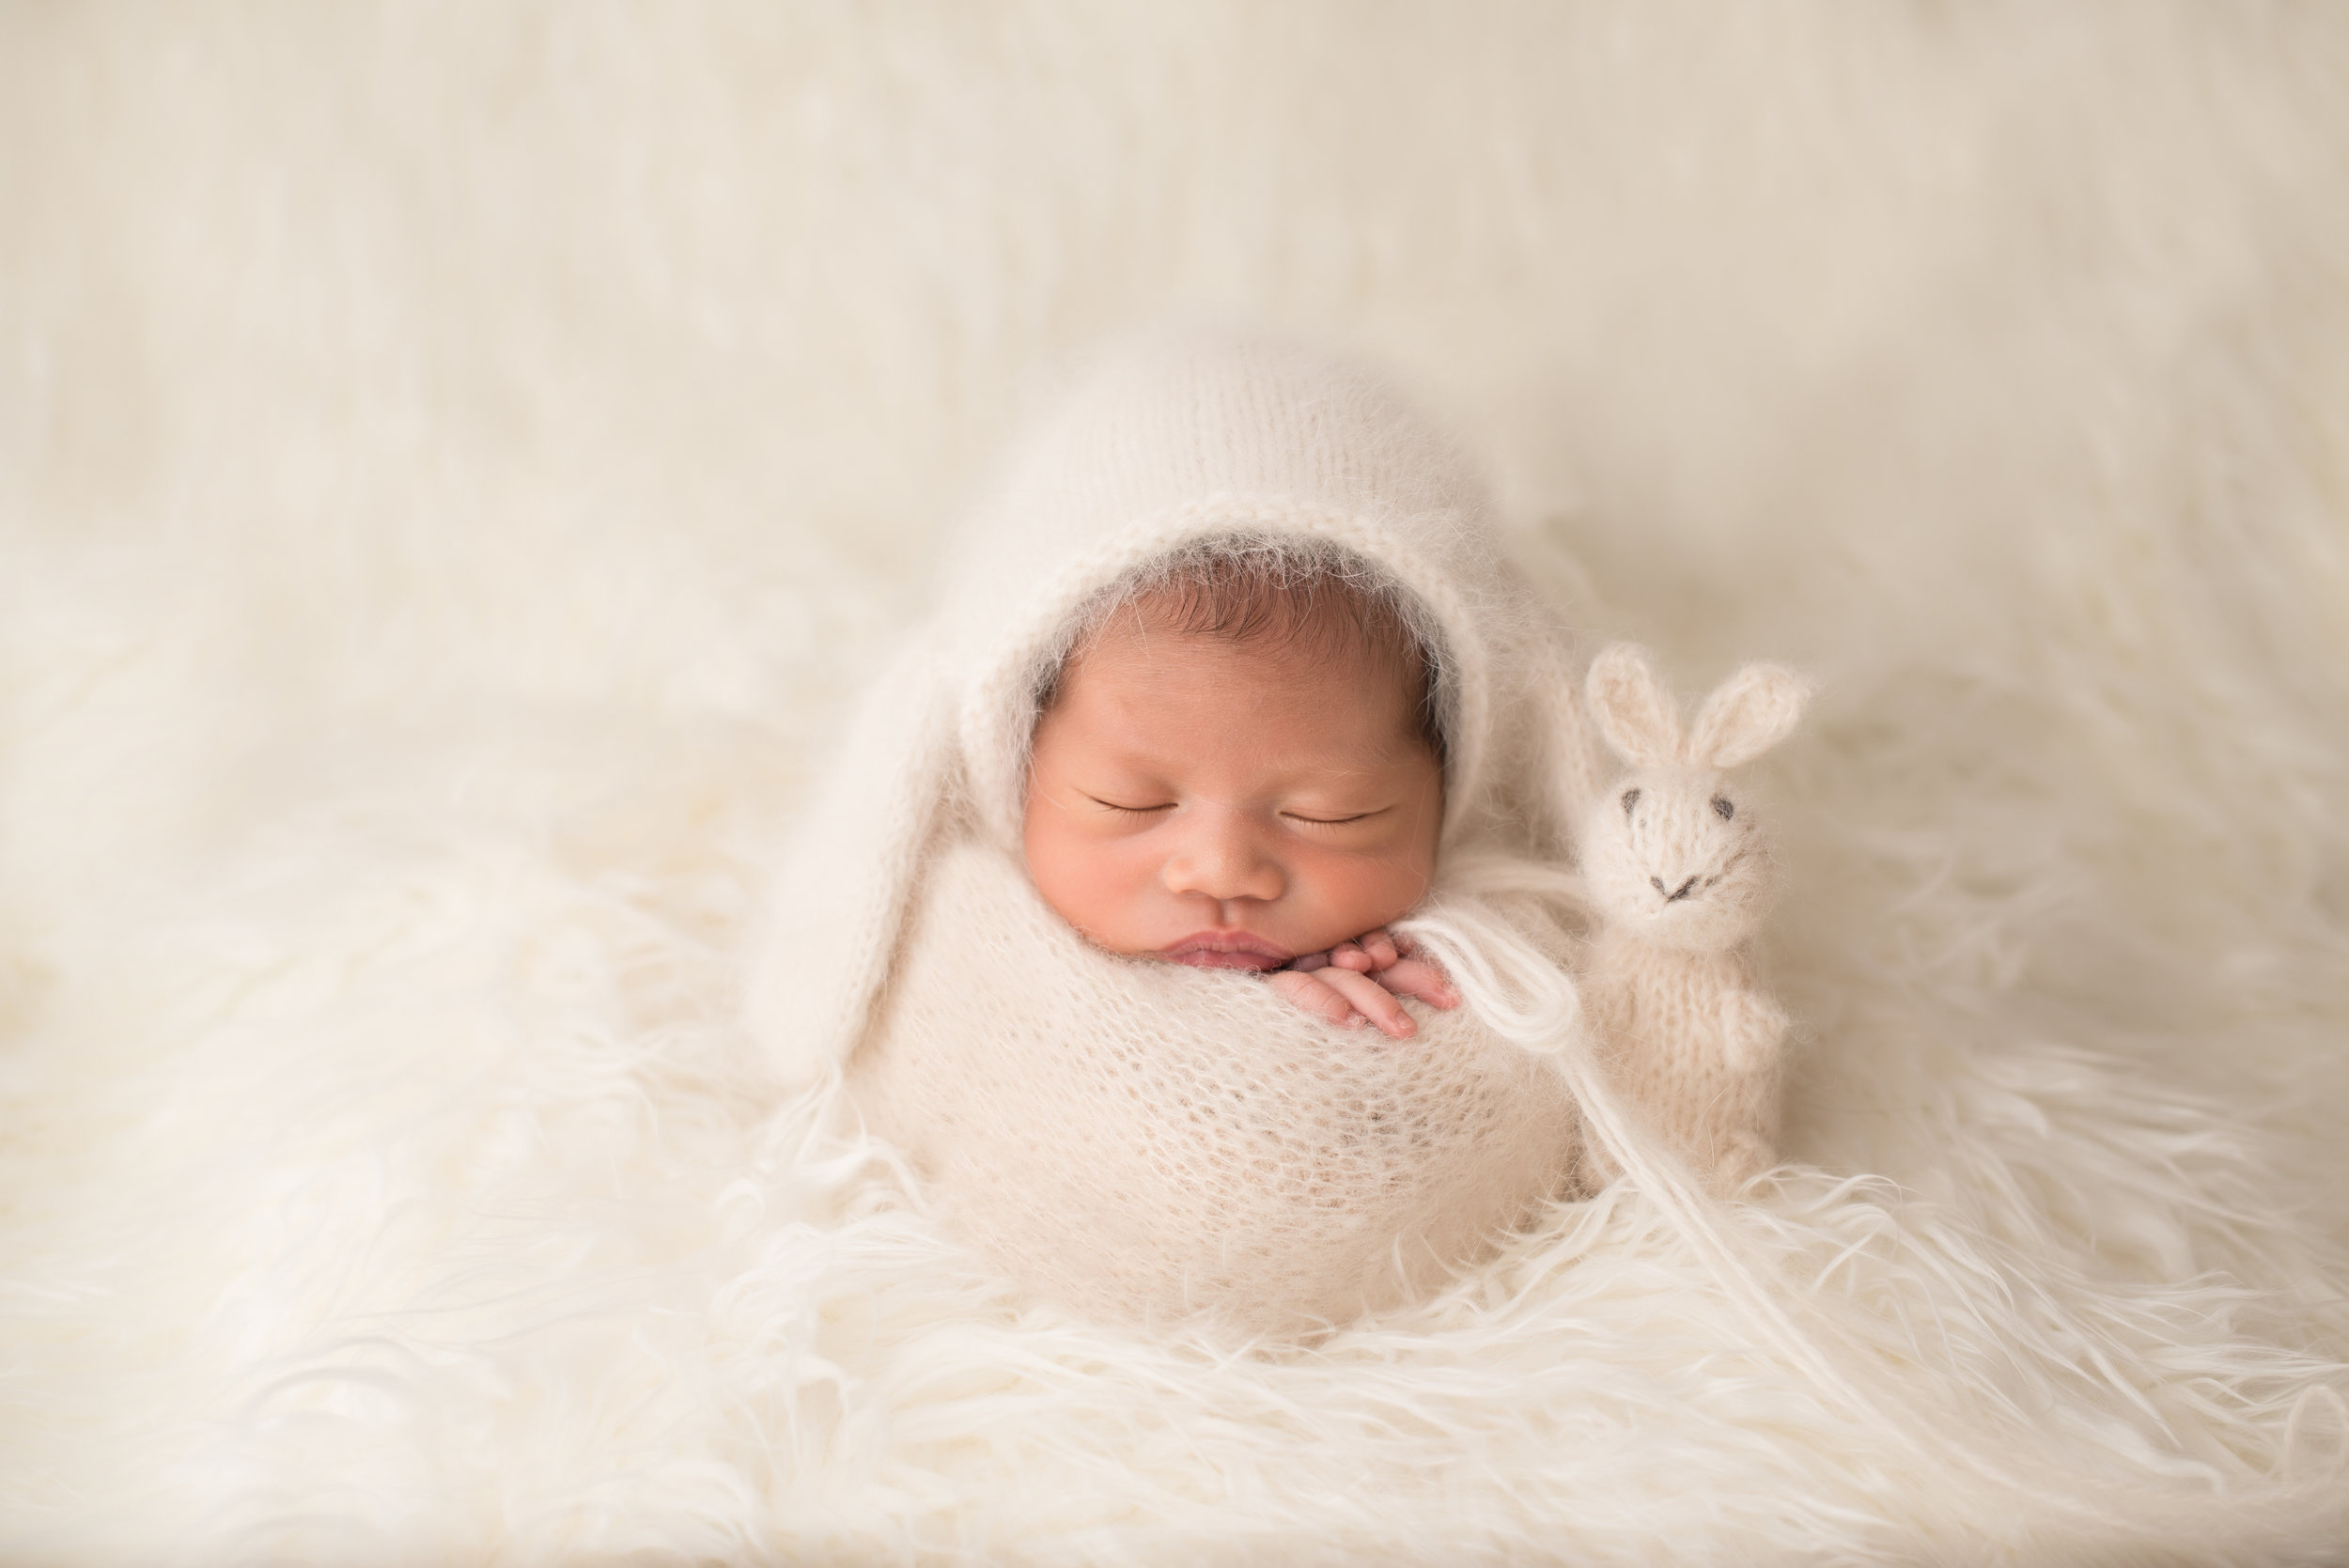 San-Gabriel-Boutique-Newborn-Photographer-curated-studio-newborn-session-baby-girl-109.jpg